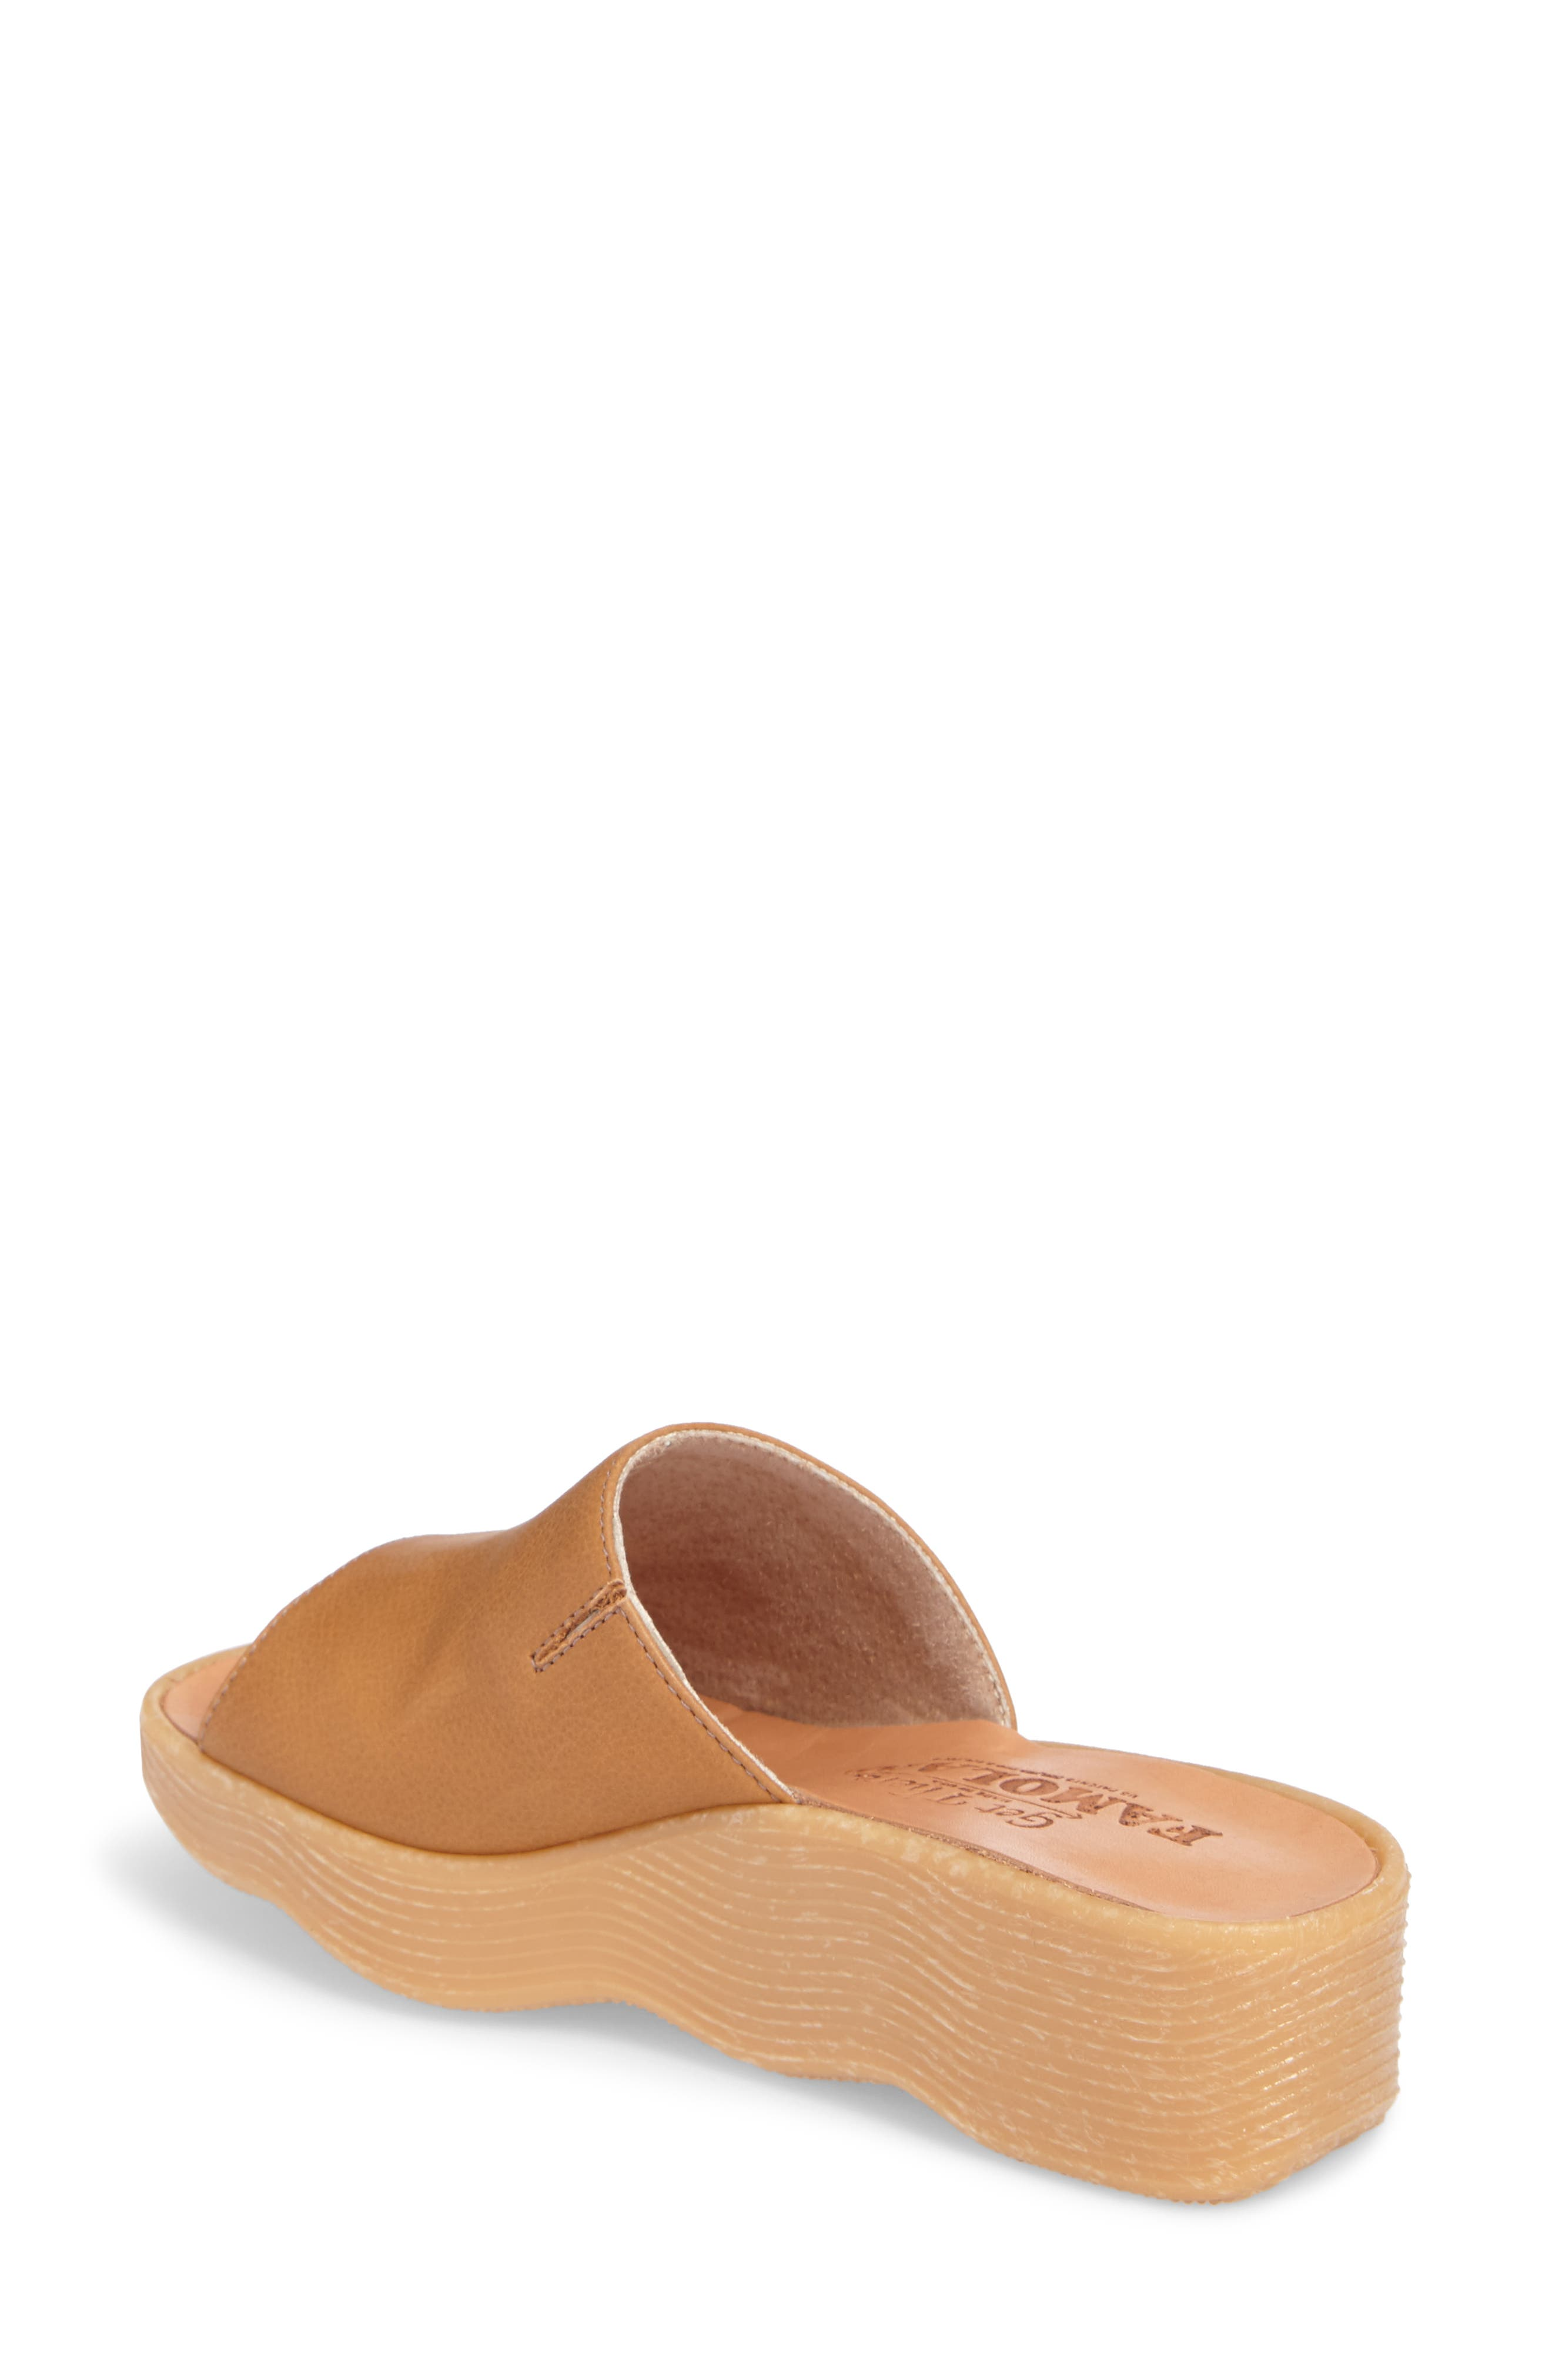 Slide N Sleek Wedge Slide Sandal,                             Alternate thumbnail 2, color,                             COGNAC LEATHER